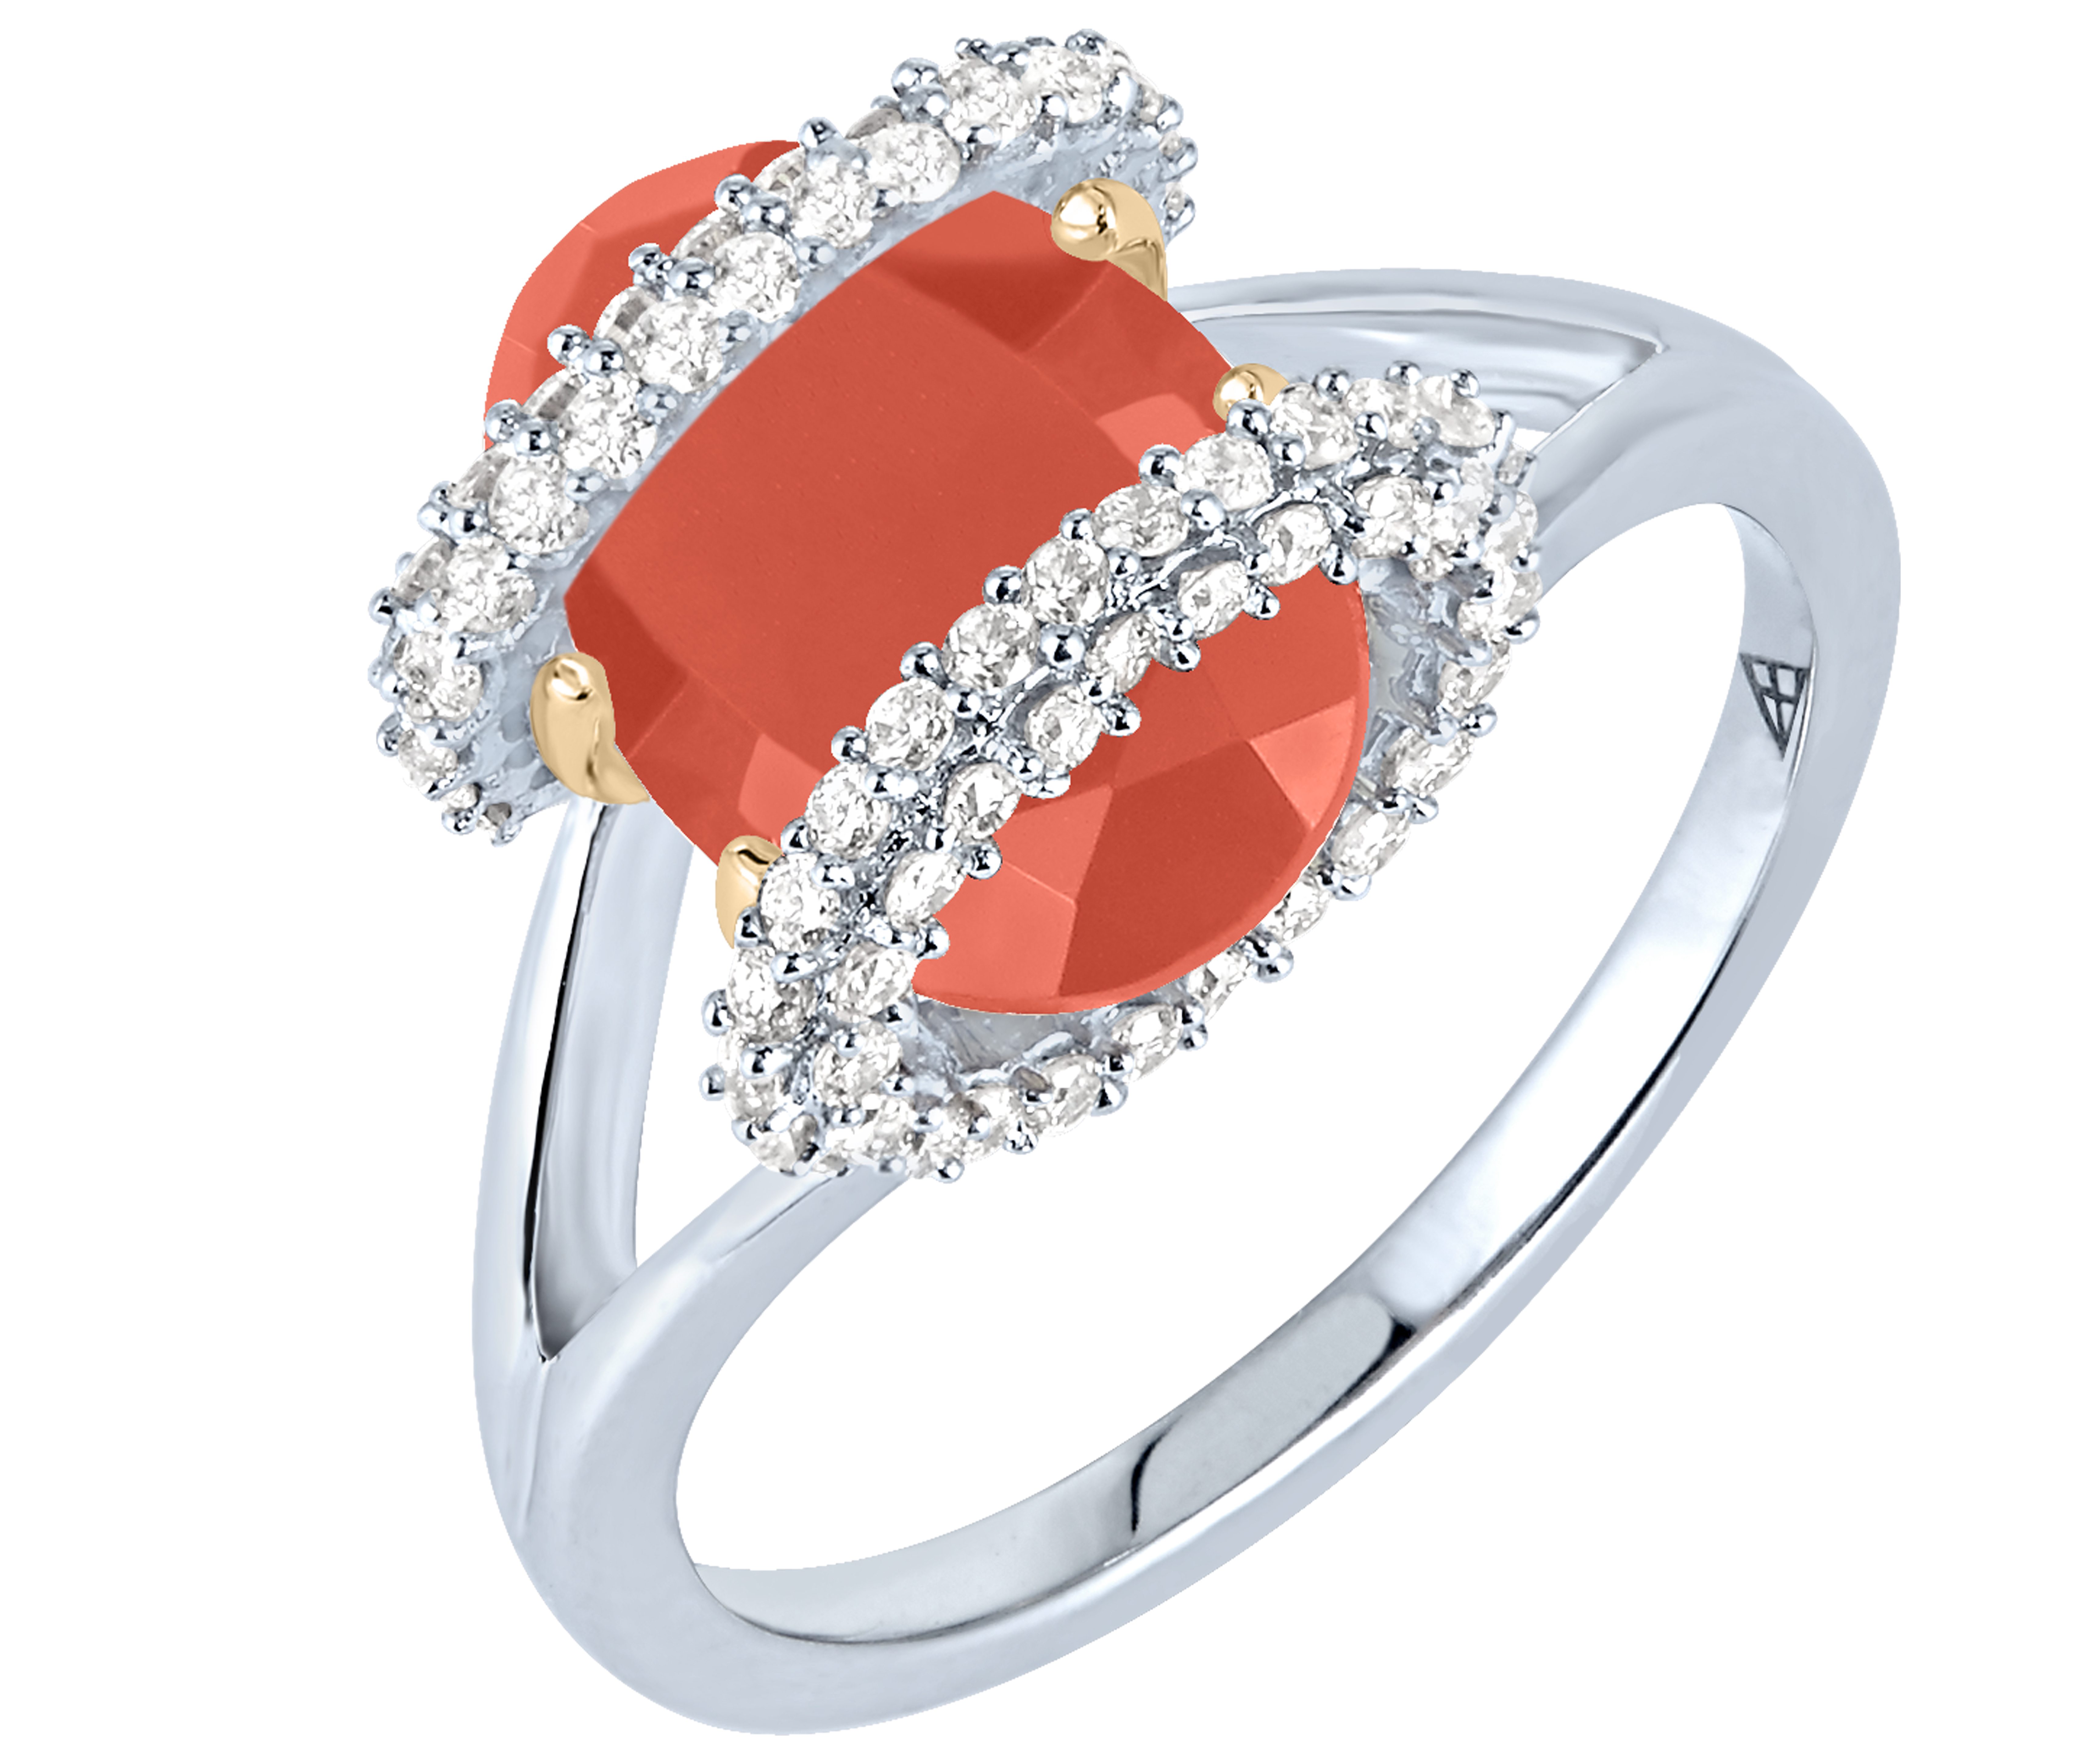 Arya Esha Galaxy collection carnelian ring | JCK On Your Market